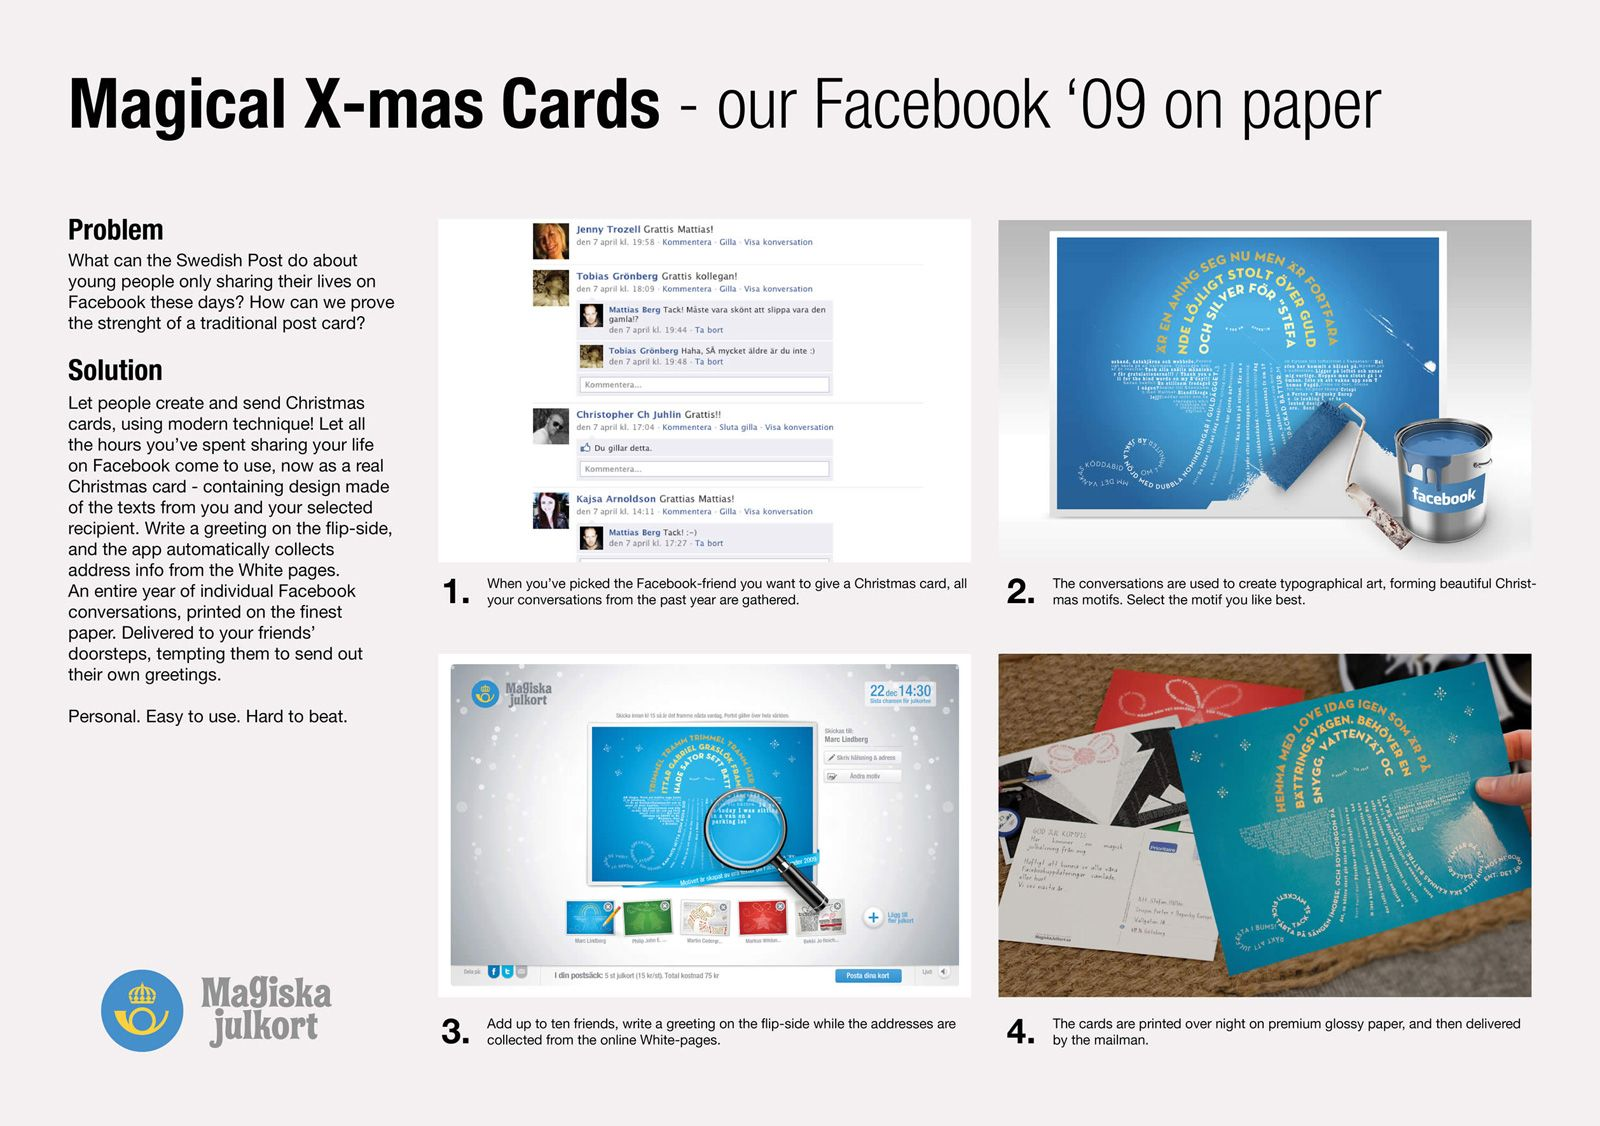 We Let People Create And Send Christmas Cards Using Modern